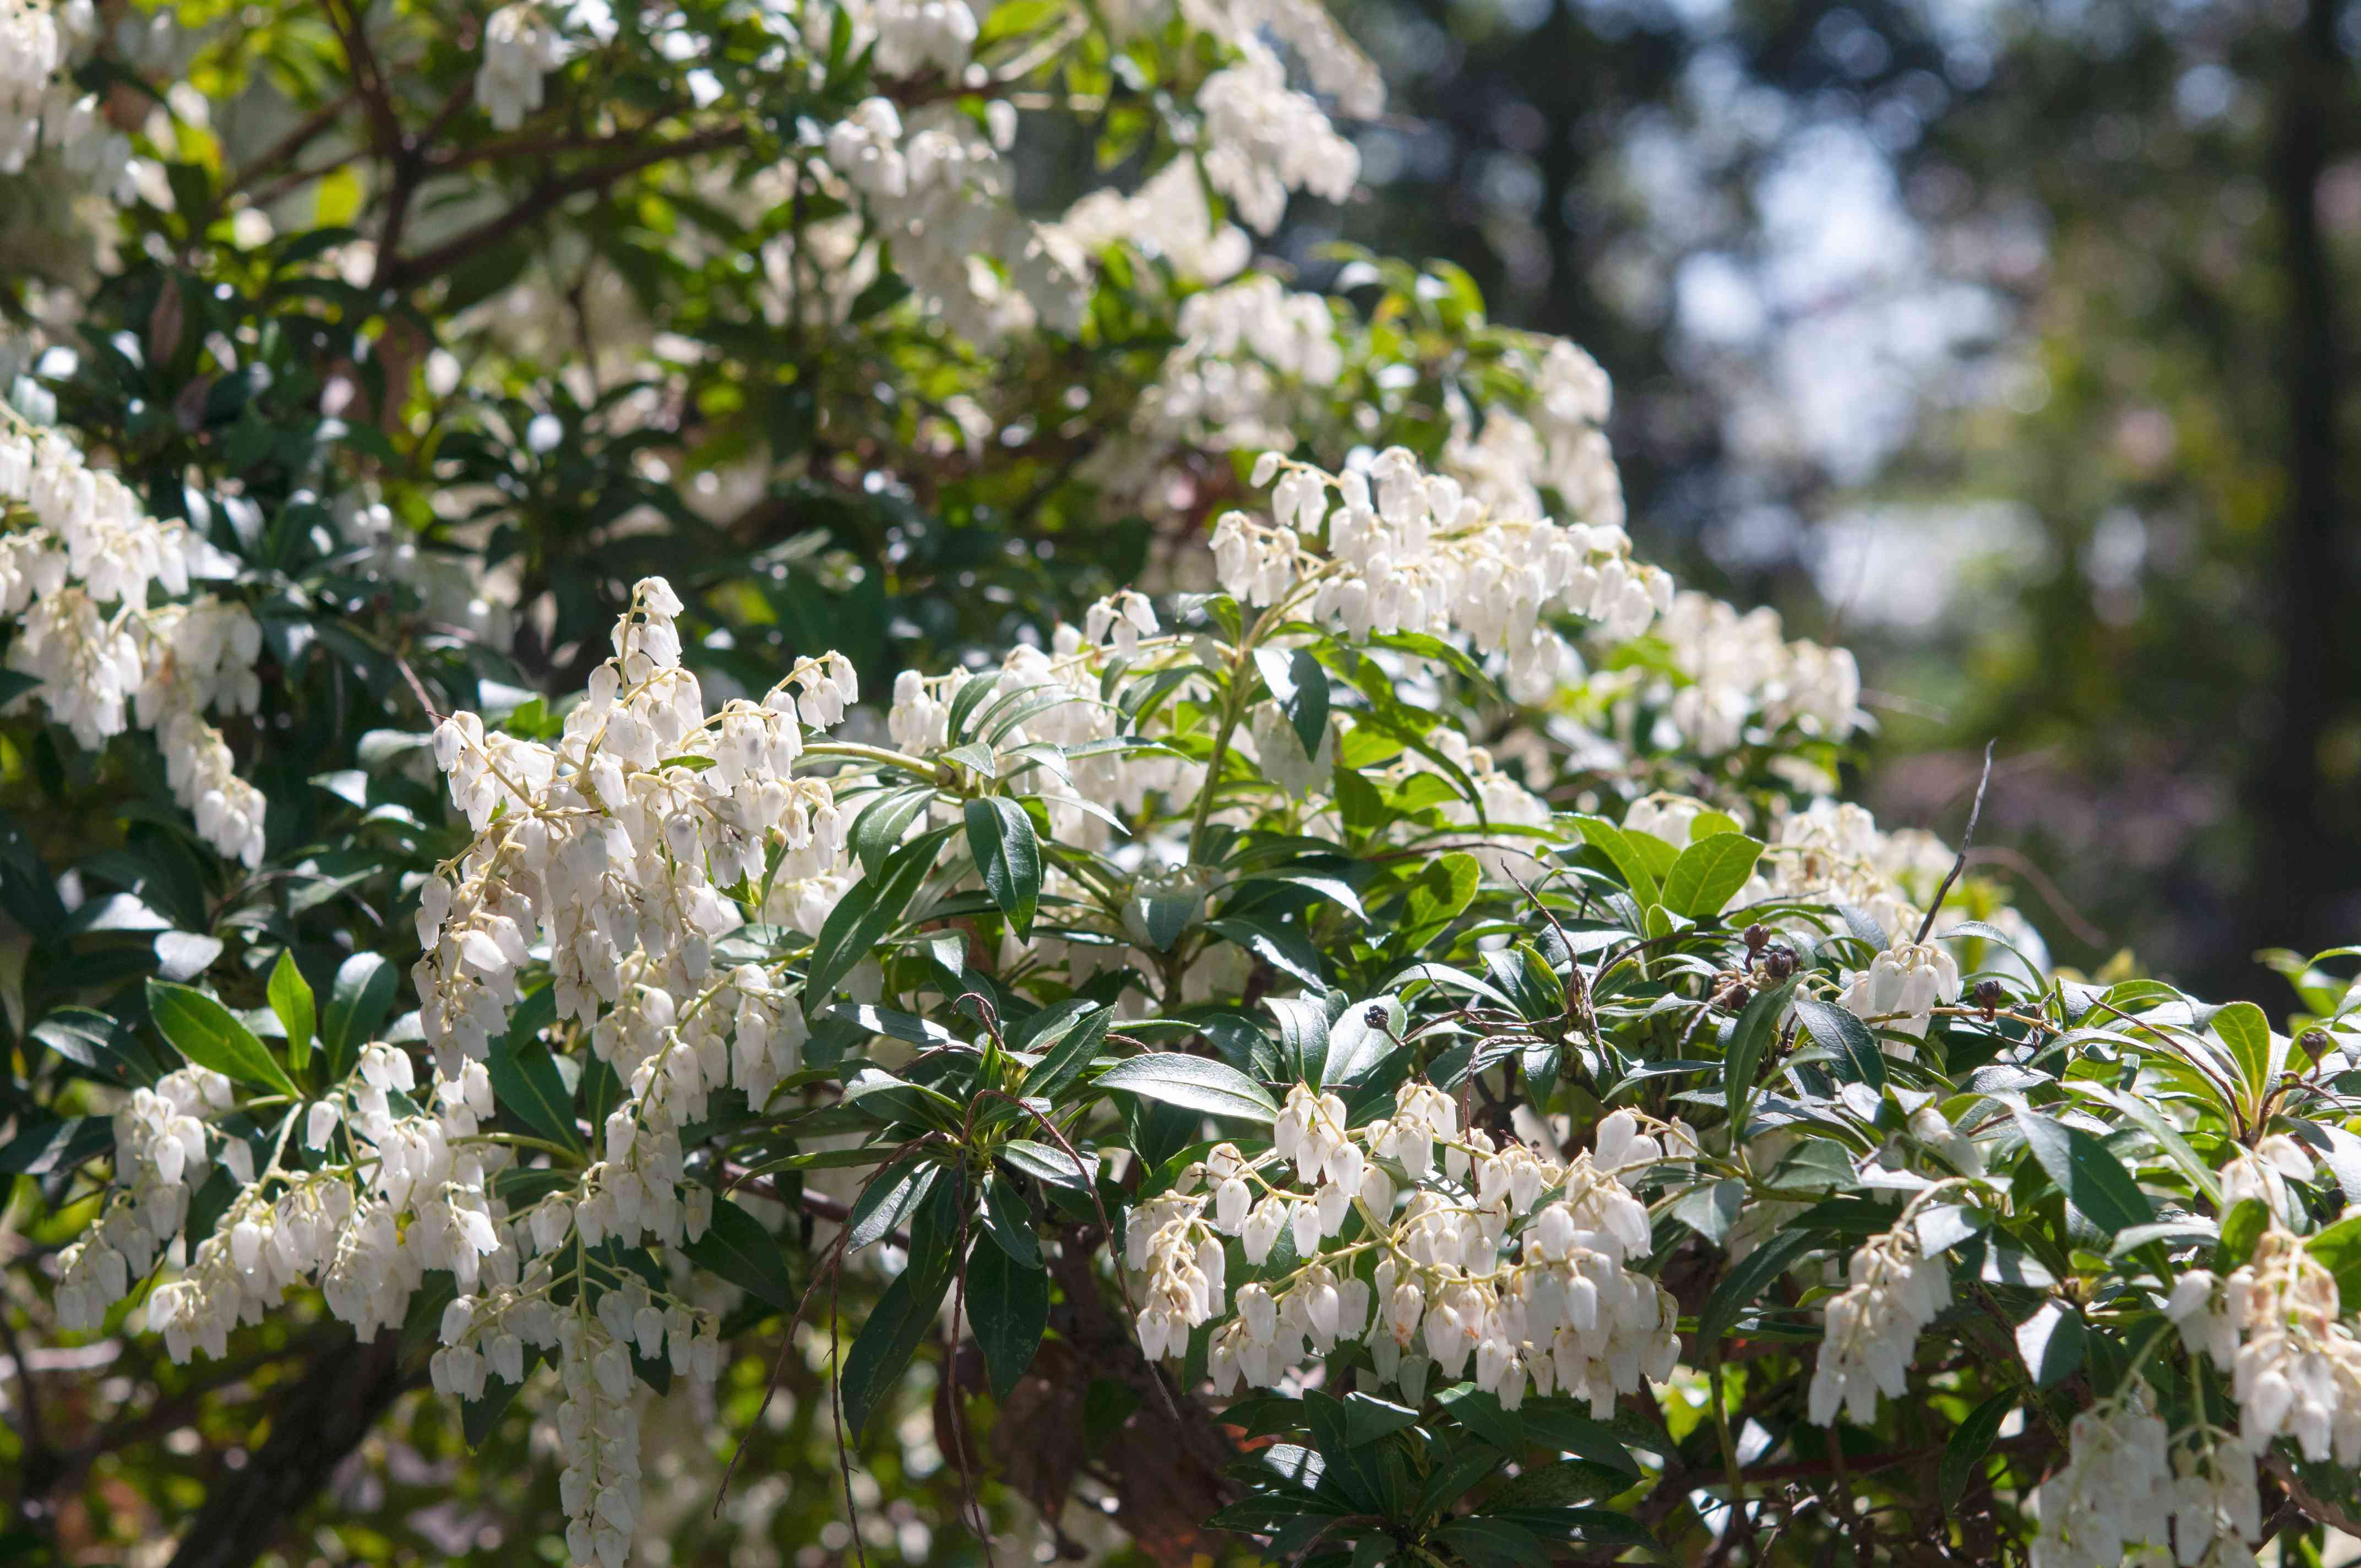 Japanese pieris with white flowers on branches in sunlight